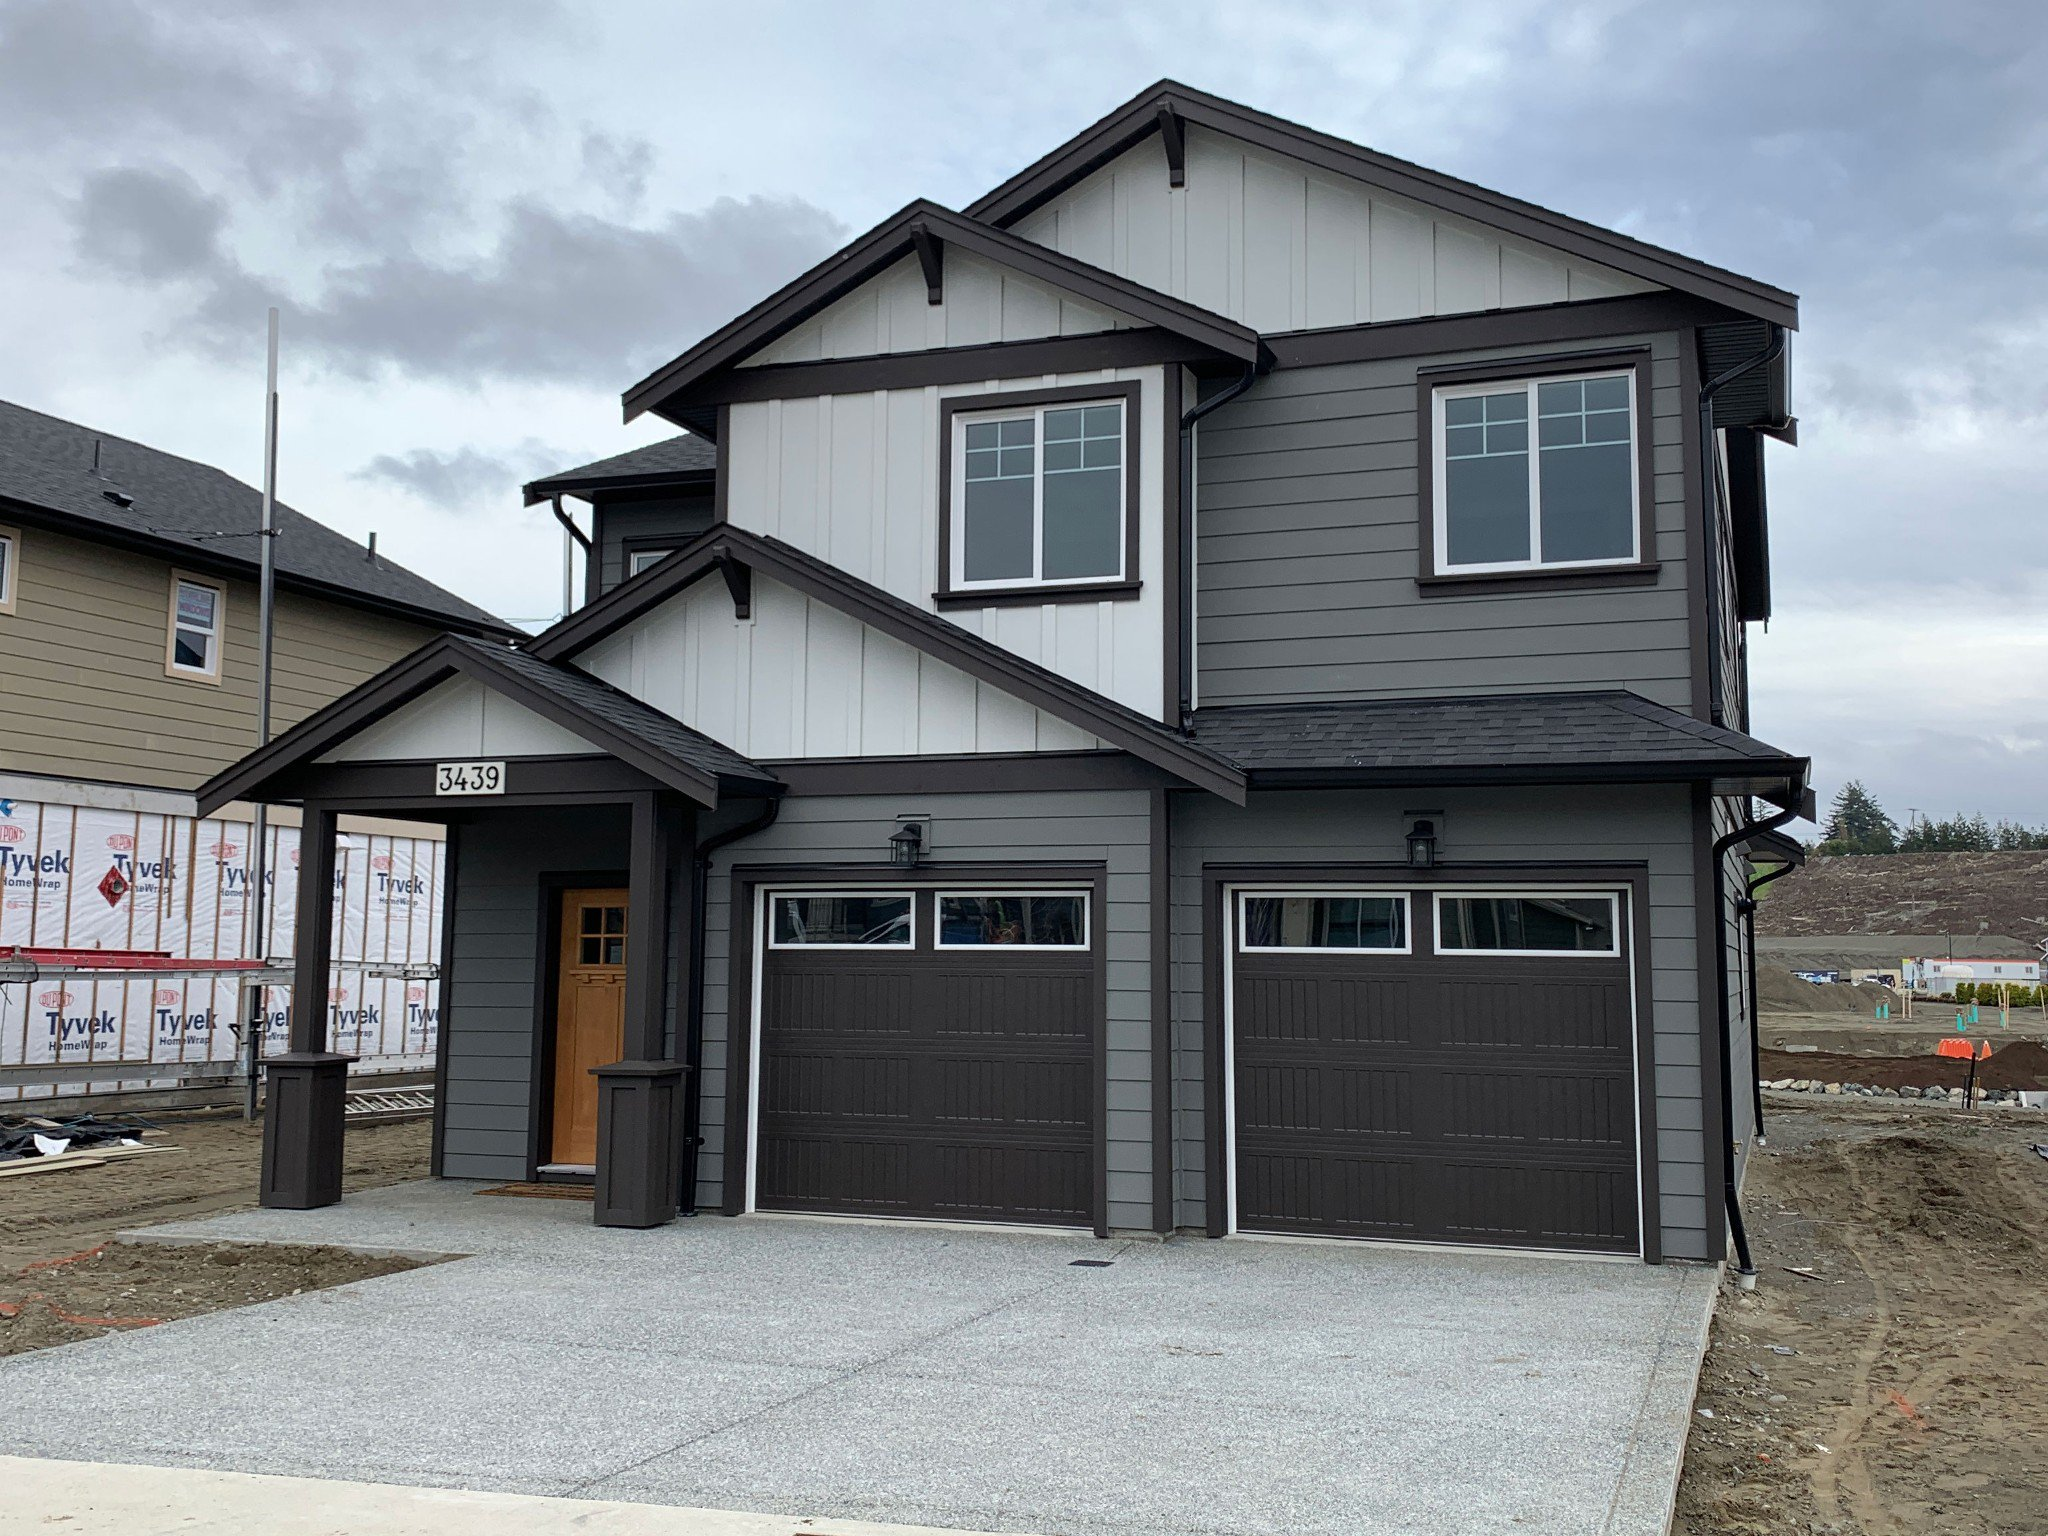 Main Photo: 3439 Sparrowhawk Avenue in : Co Royal Bay Single Family Detached for sale (Colwood)  : MLS®# 419397